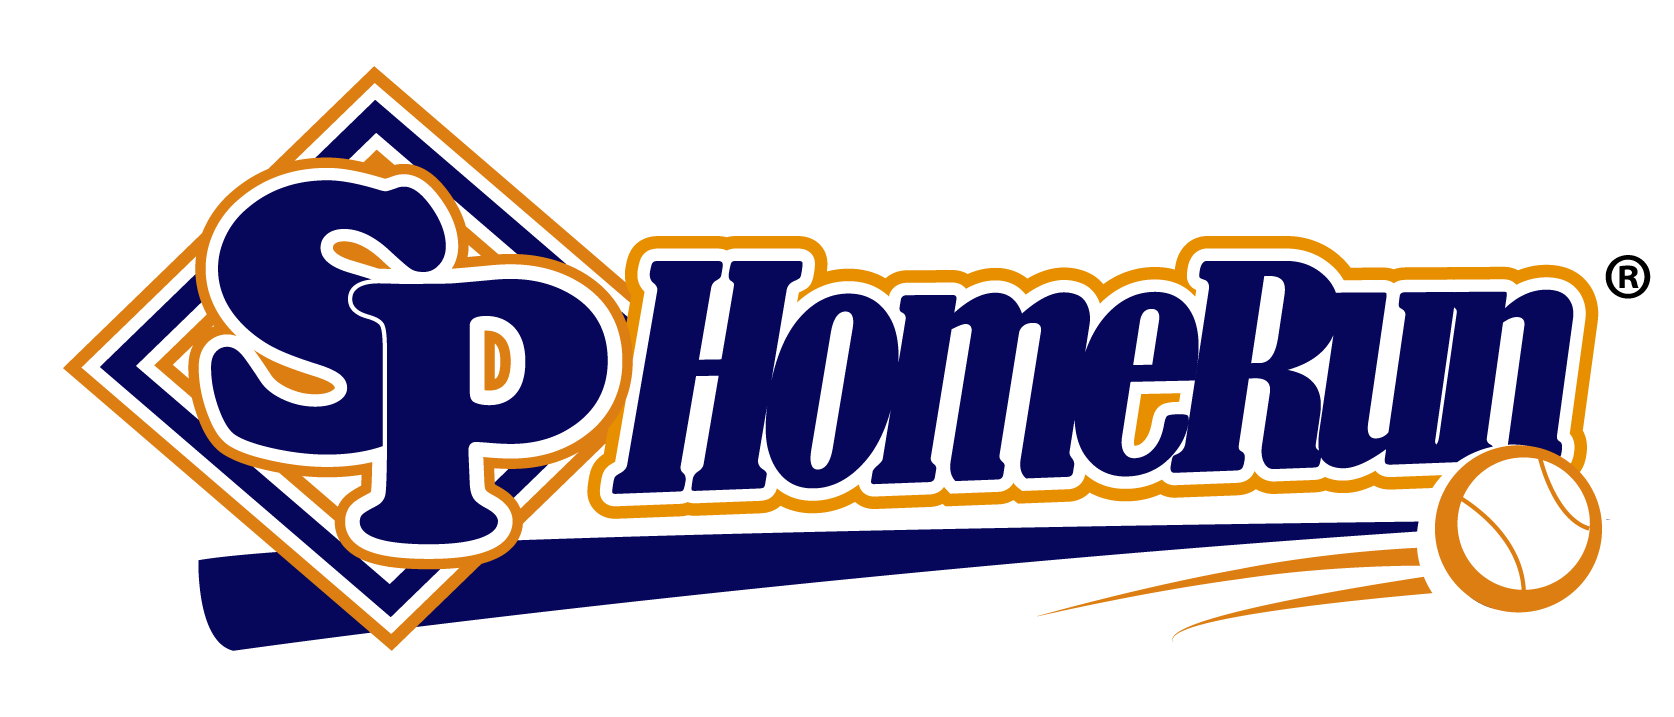 SP Home Run Inc.